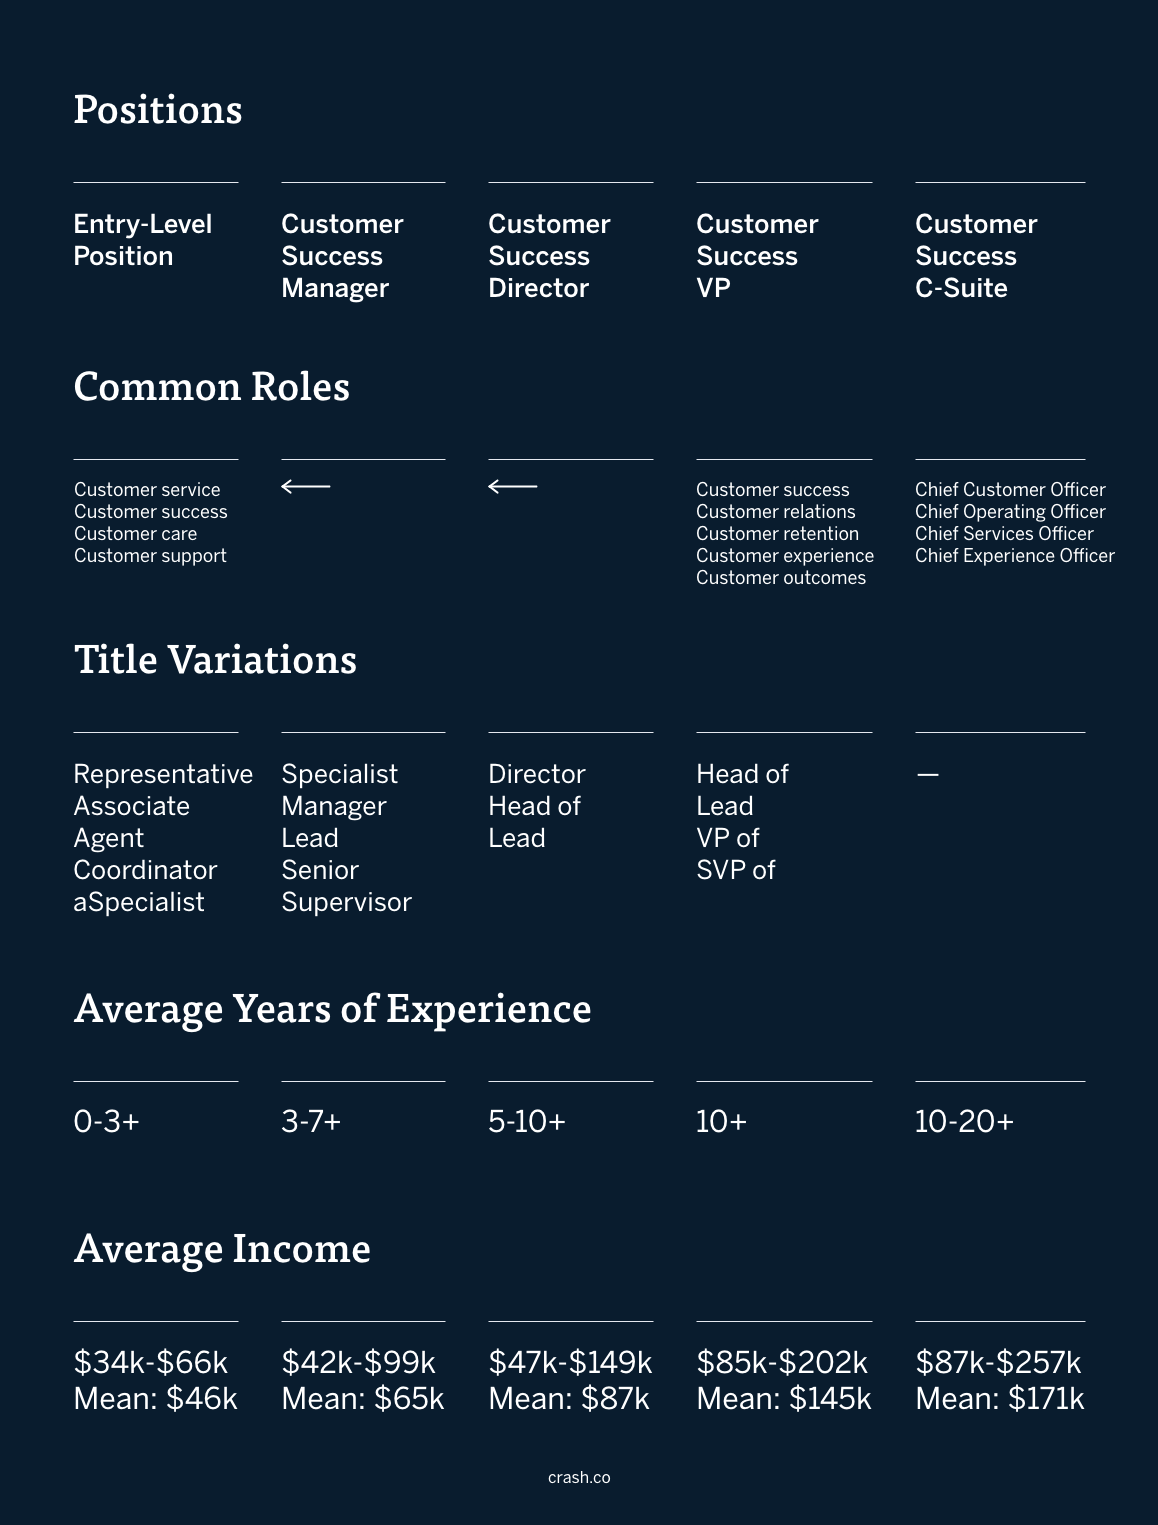 A graphic with columns on entry-level marketing positions, common roles for entry-level marketers (social media, content marketer, direct-marketing, email marketing, product marketing, marketing analytics, marketing operations, growth, brand marketing, account-based marketing, influencer marketing, field marketing, print and media, advertising, digital marketing, digital advertising, marketing analyst, lifecycle marketing, public relations, digital media, communications, partnerships), title variations for entry-level marketers (marketer, associate, coordinator, specialist), average years of experience for entry-level marketers (0-3+), and average income for entry-level marketers ($46k). Also includes marketing manager common roles and marketing director common roles, marketing manager title variations (specialist, manager, lead, senior) and marketing director title variations (director, head of, lead), marketing manager average years of experience (3-7+) and marketing director years of experience (5-10+), and average income for marketing managers ($65k) and average income for marketing directors ($87k) from Payscale. There is a breakdown of marketing vice president positions–common roles for marketing VPs (marketing, brand development, digital marketing, growth, product marketing, publicity/public relations, communications), marketing vice president title variations (head of, lead, VP of), marketing vice president average years of experience (10+),  and average income for marketing vice presidents ($145k). Also included in the last column is marketing c-suite positions–common marketing c-suite jobs (marketing, growth, revenue, strategy, brand, content), title variations for marketing c-suite jobs, average years of experience for c-suite marketing jobs (10-20+), and average income for c-suite marketing jobs ($171k).